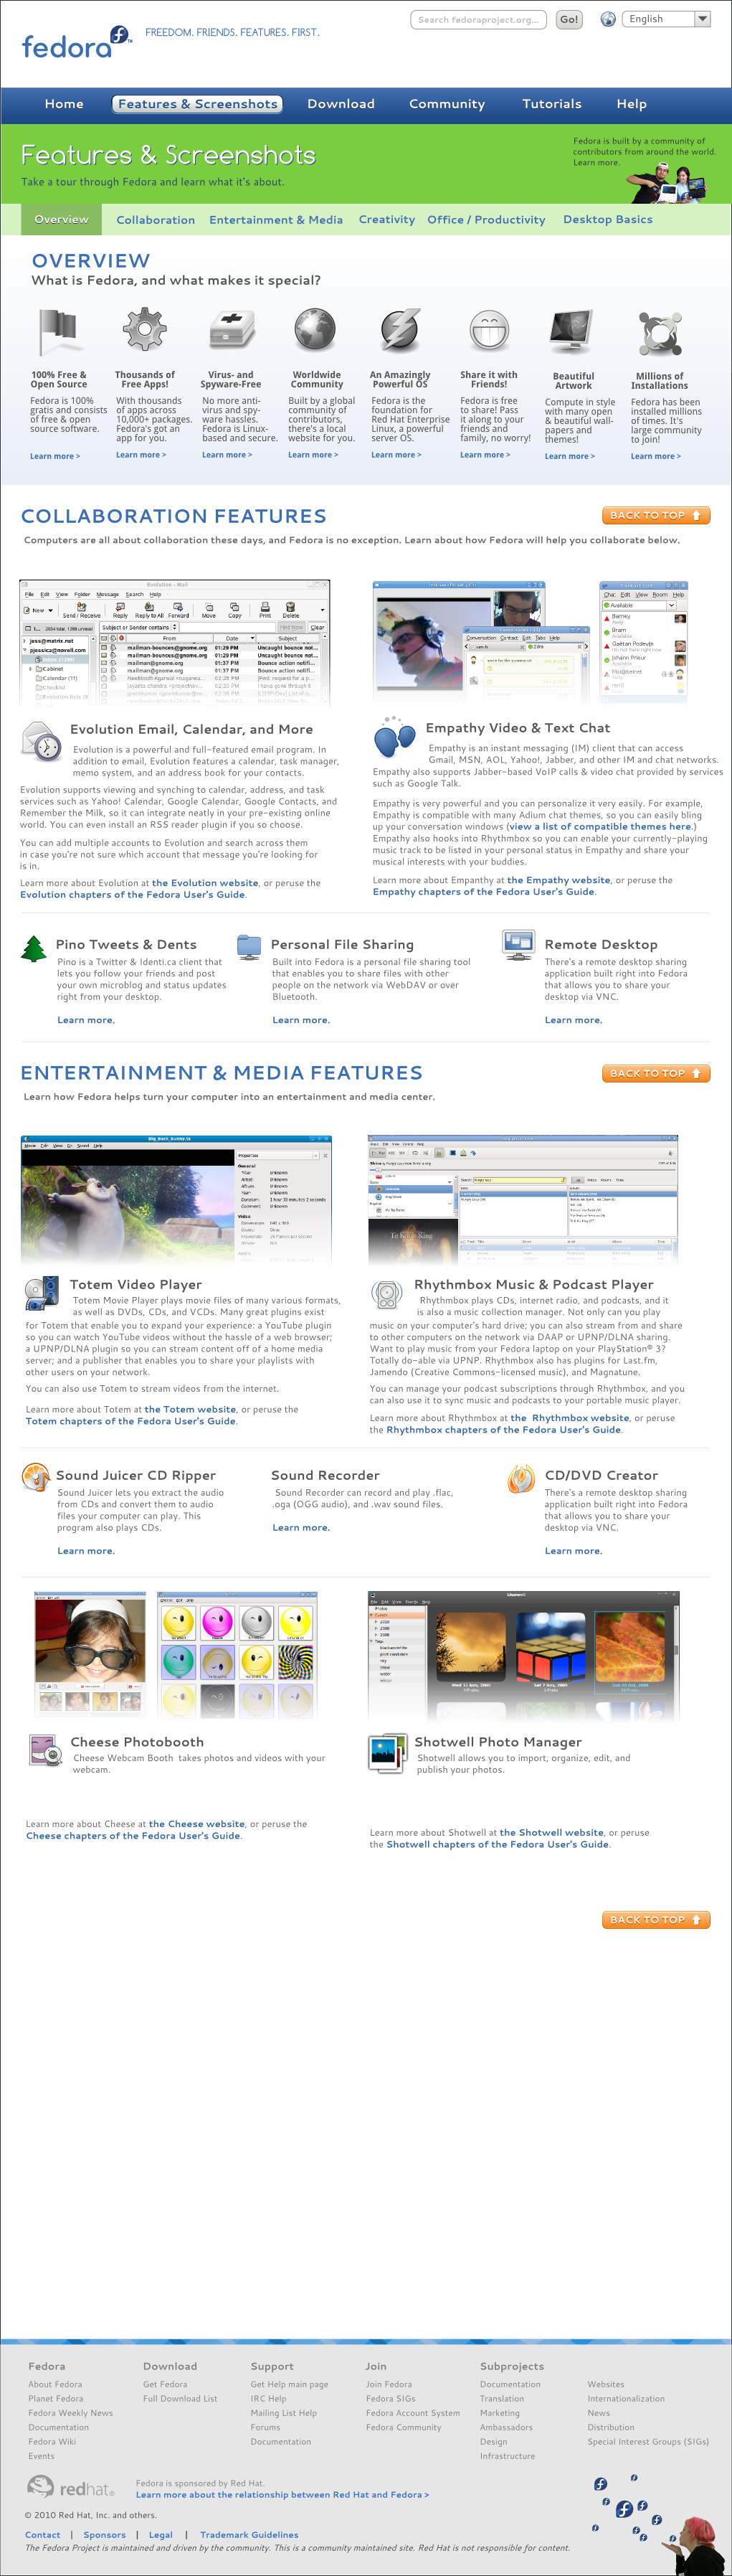 Wwwfpo-redesign-2010 1-features.png